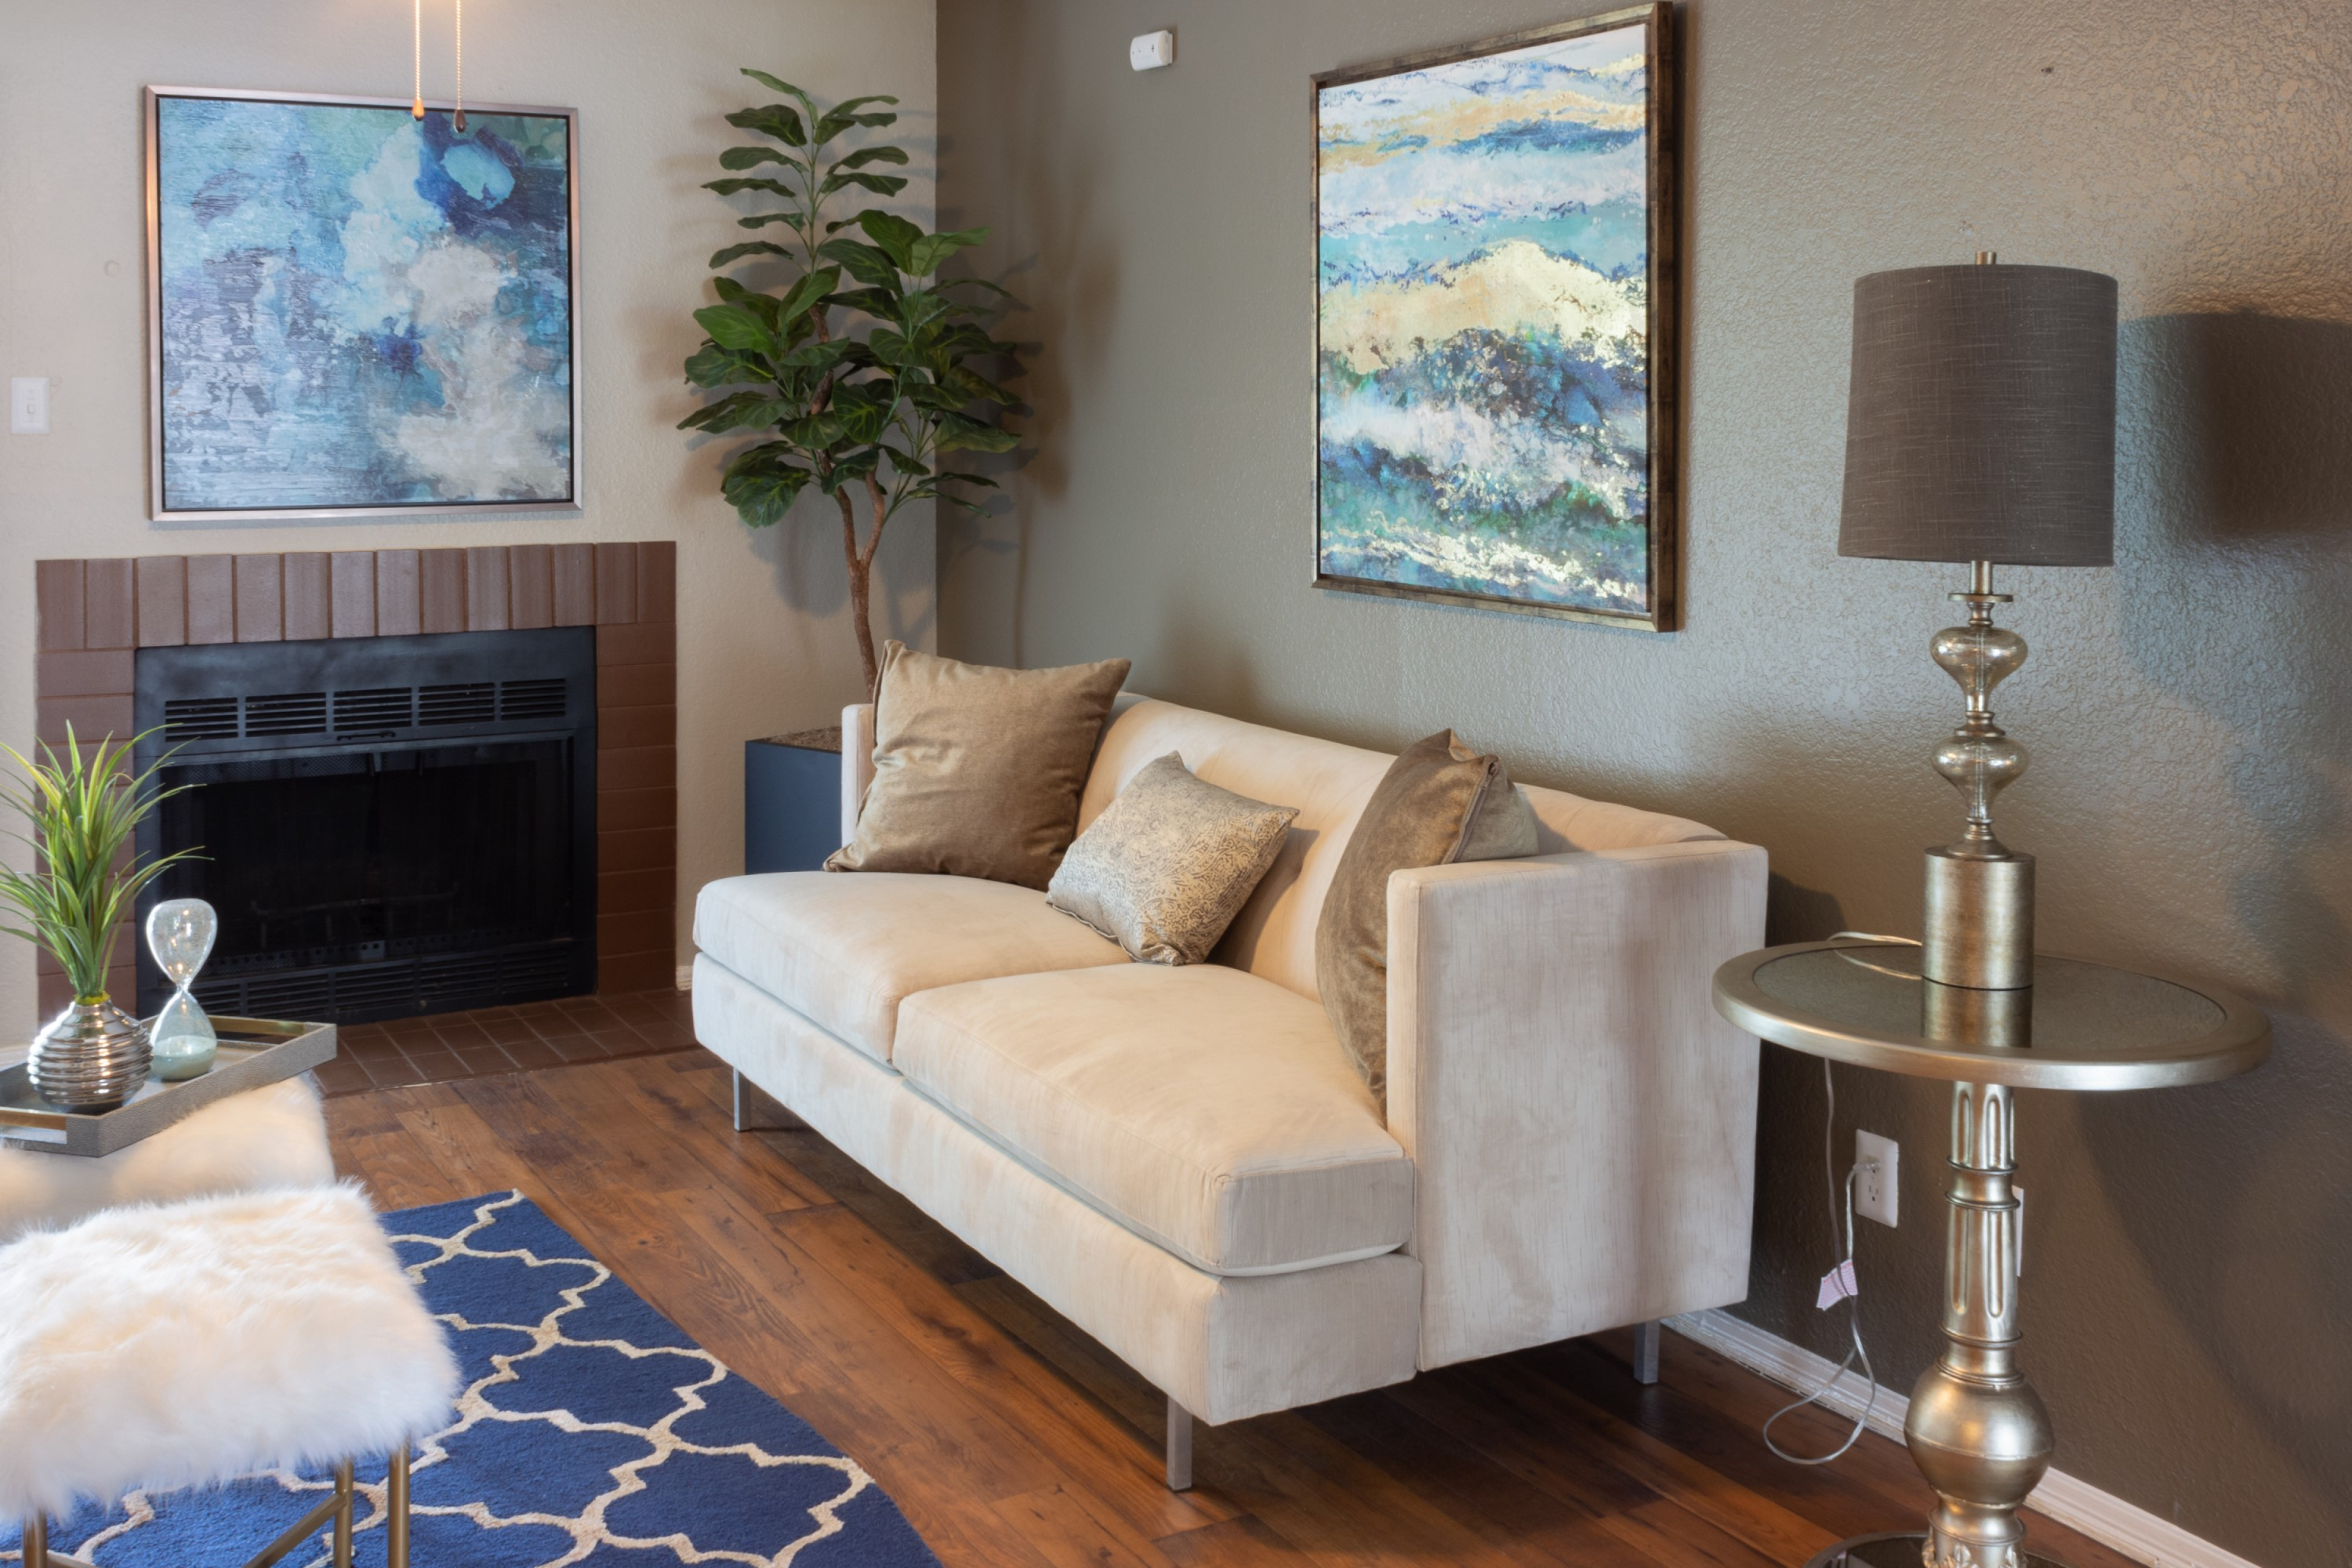 1 2 bedroom apartments for rent in dallas tx montecito - One bedroom apartments in dallas tx ...